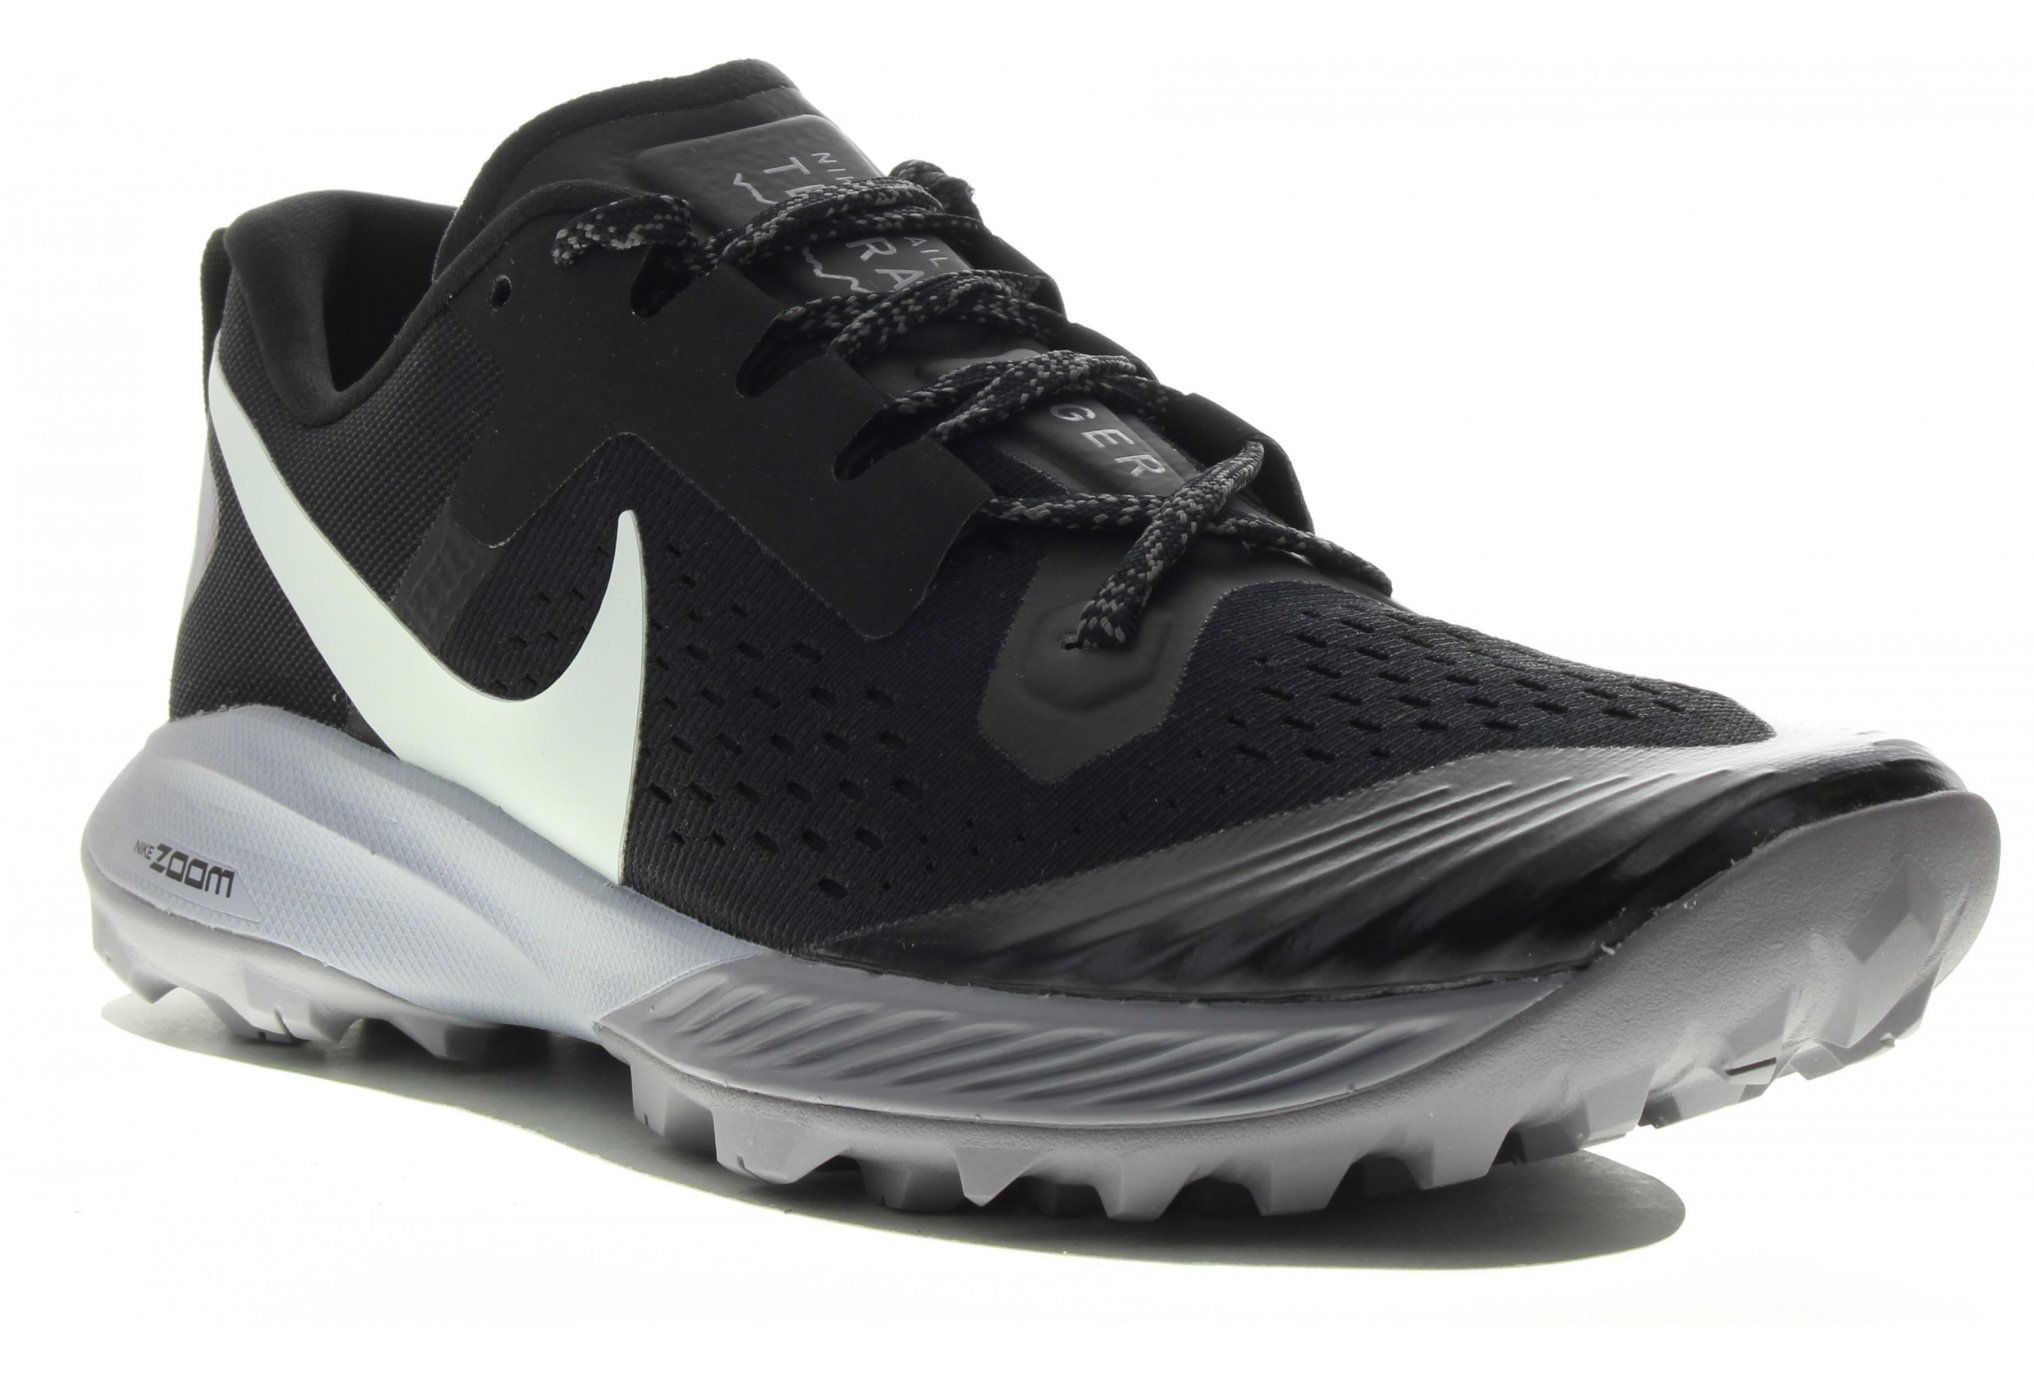 Nike Air Zoom Terra Kiger 5 W Chaussures running femme